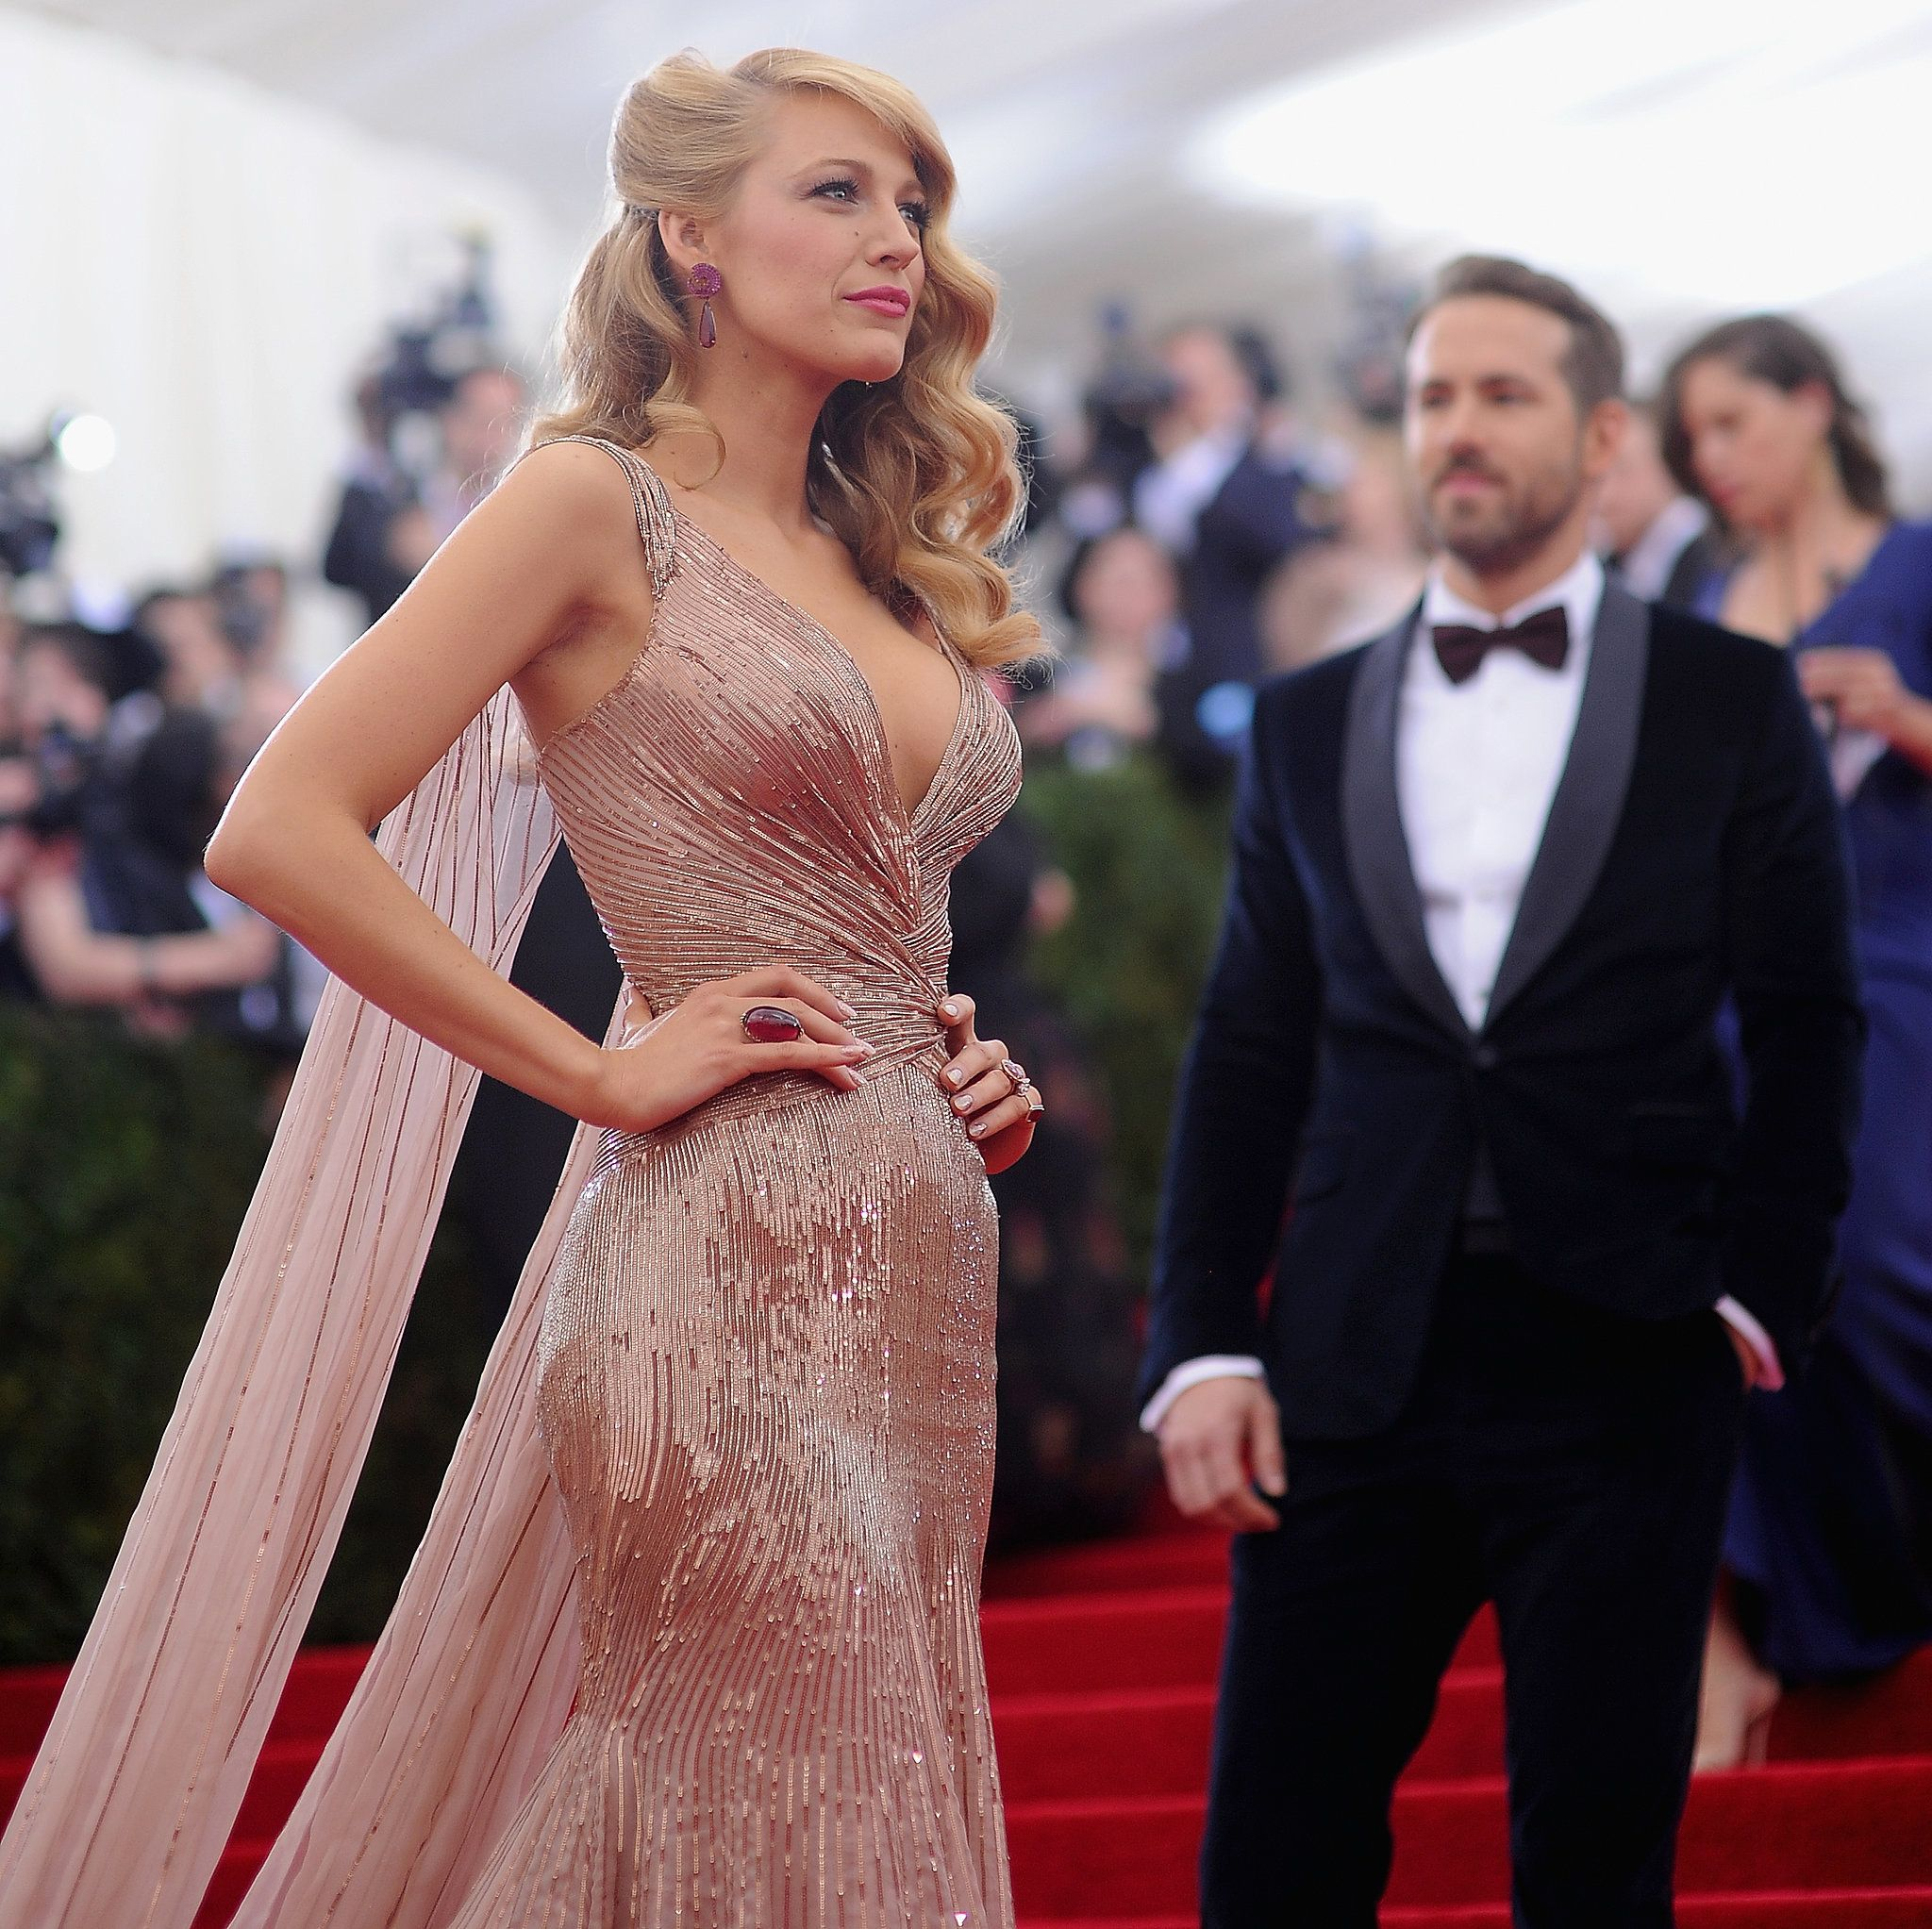 Ryan Reynolds patiently waited for his wife, Blake Lively